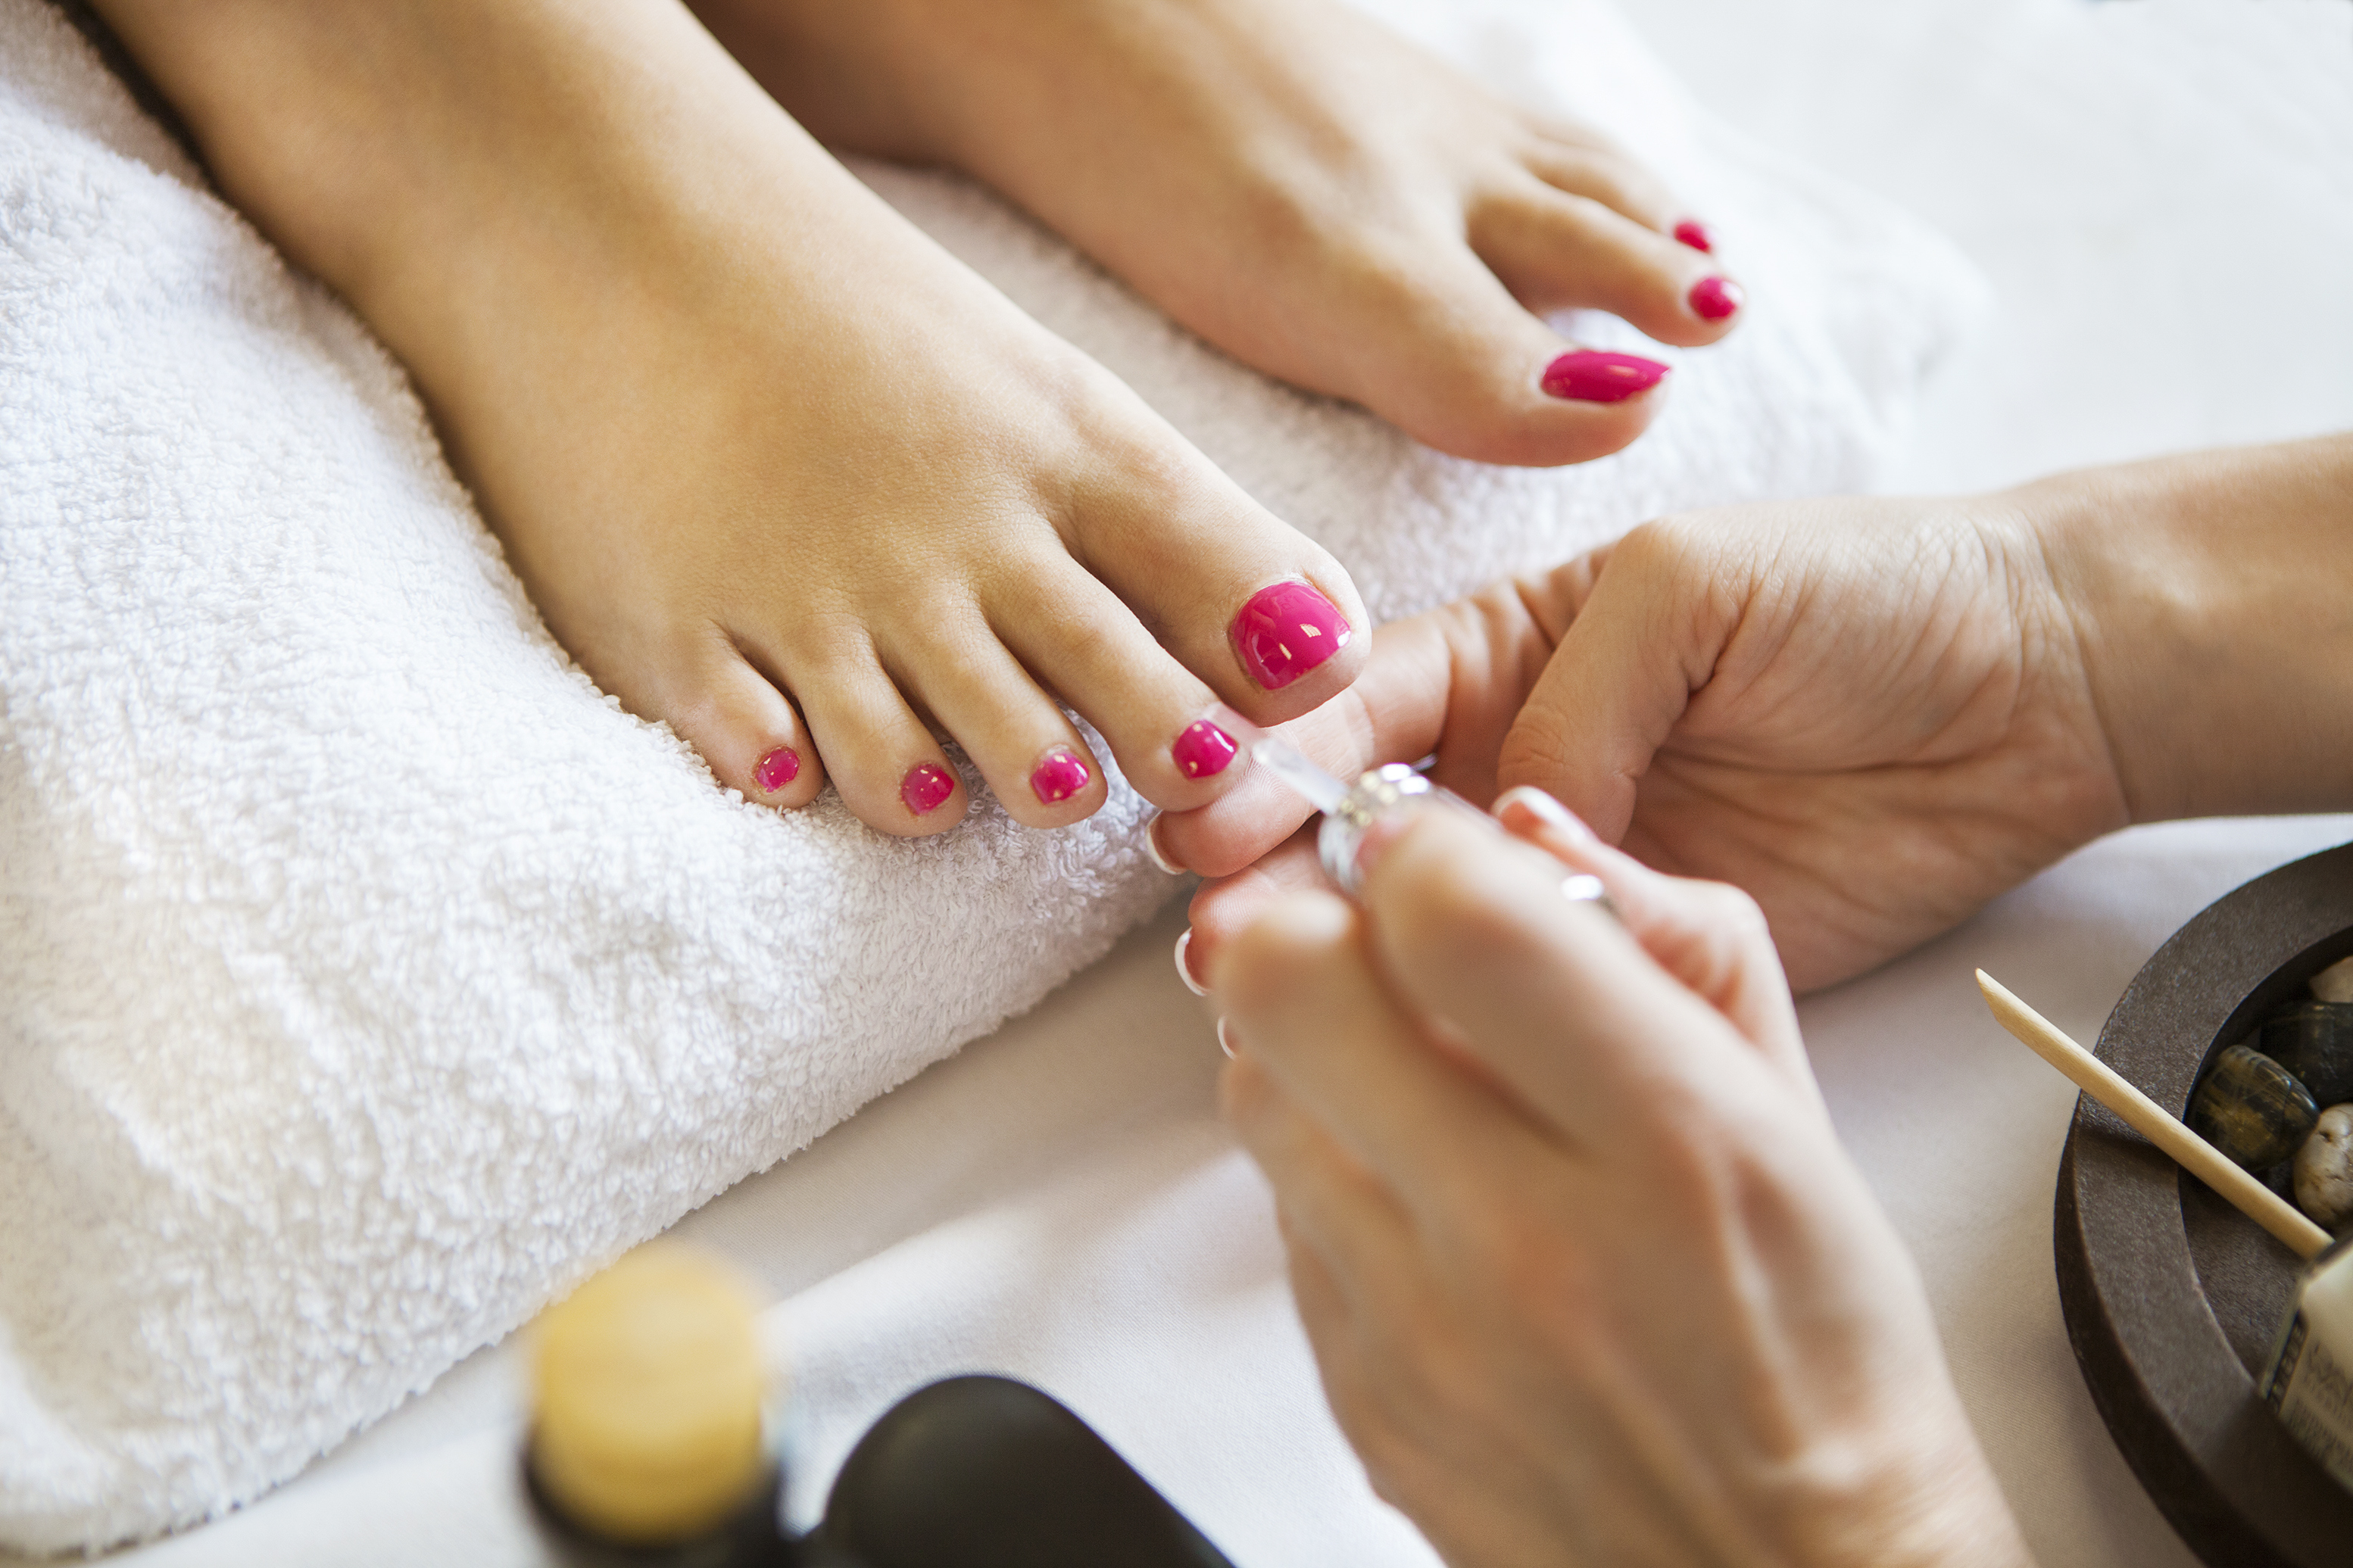 What Happens During a Pedicure? | LEAFtv